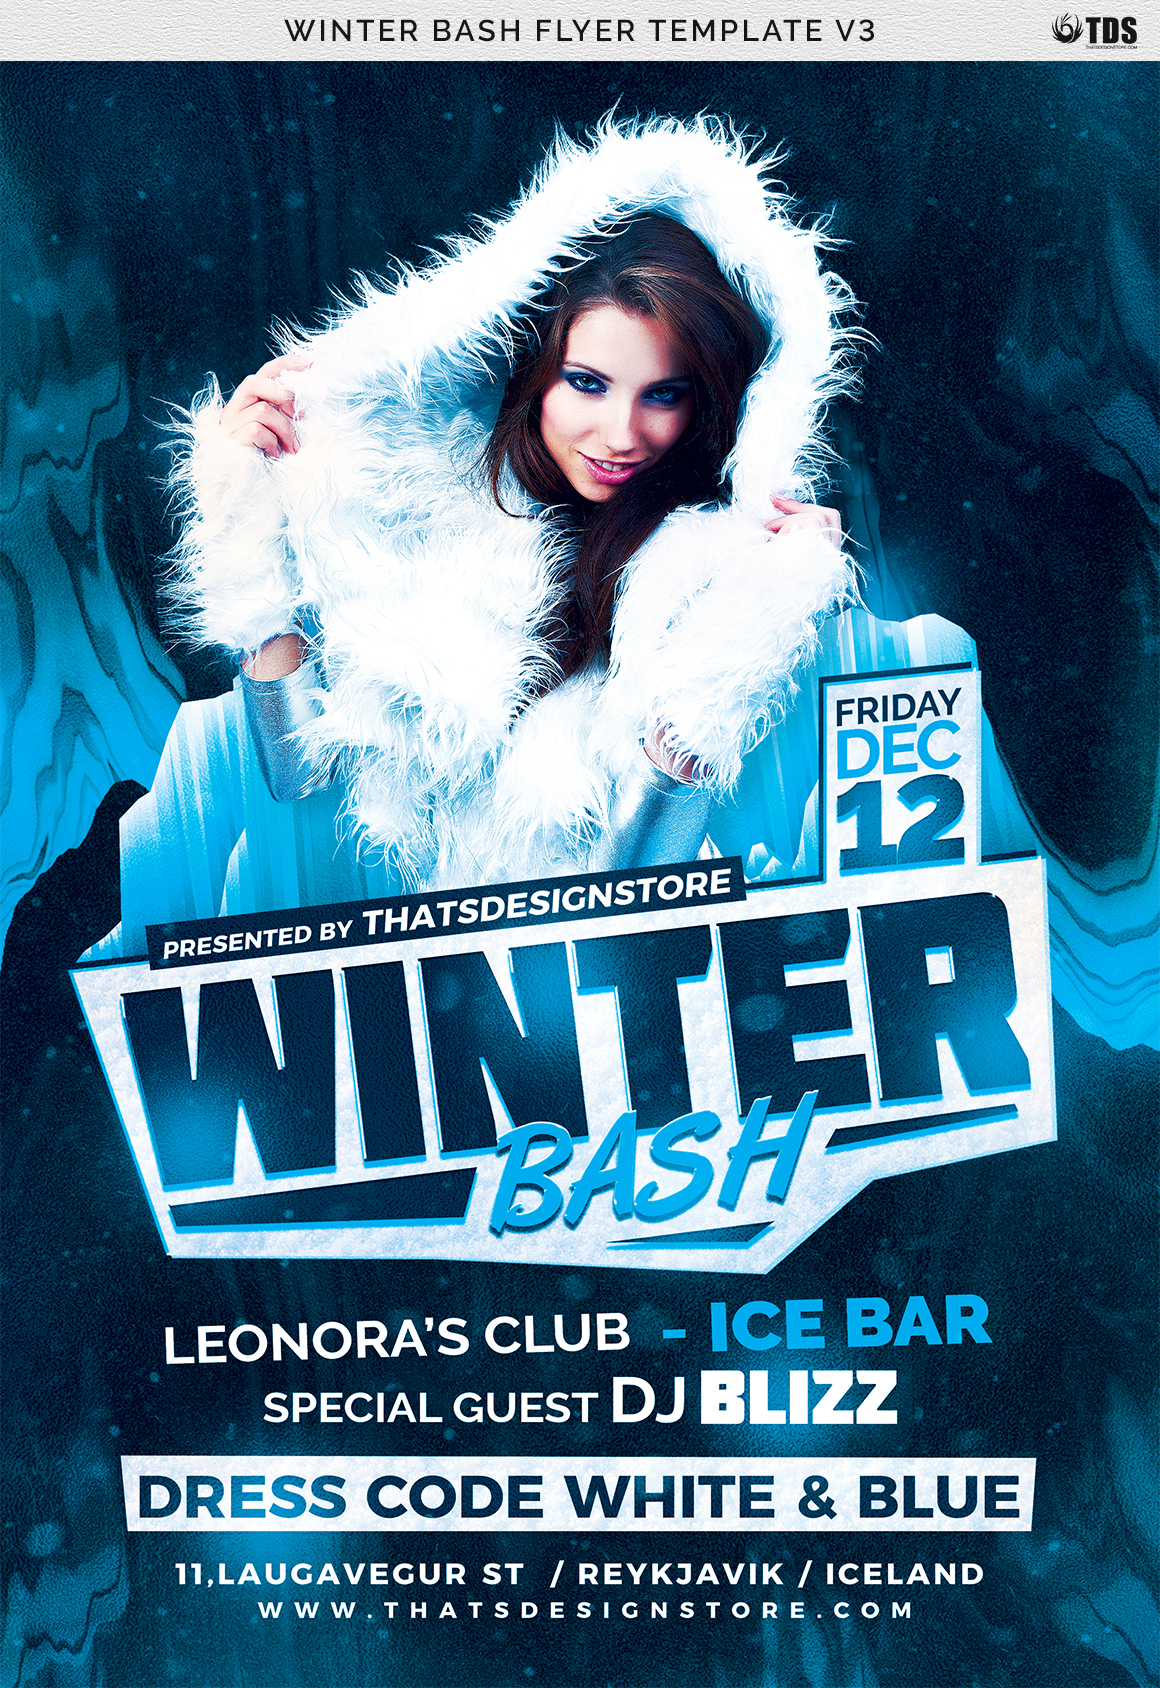 Winter Bash Flyer Template V3 example image 7